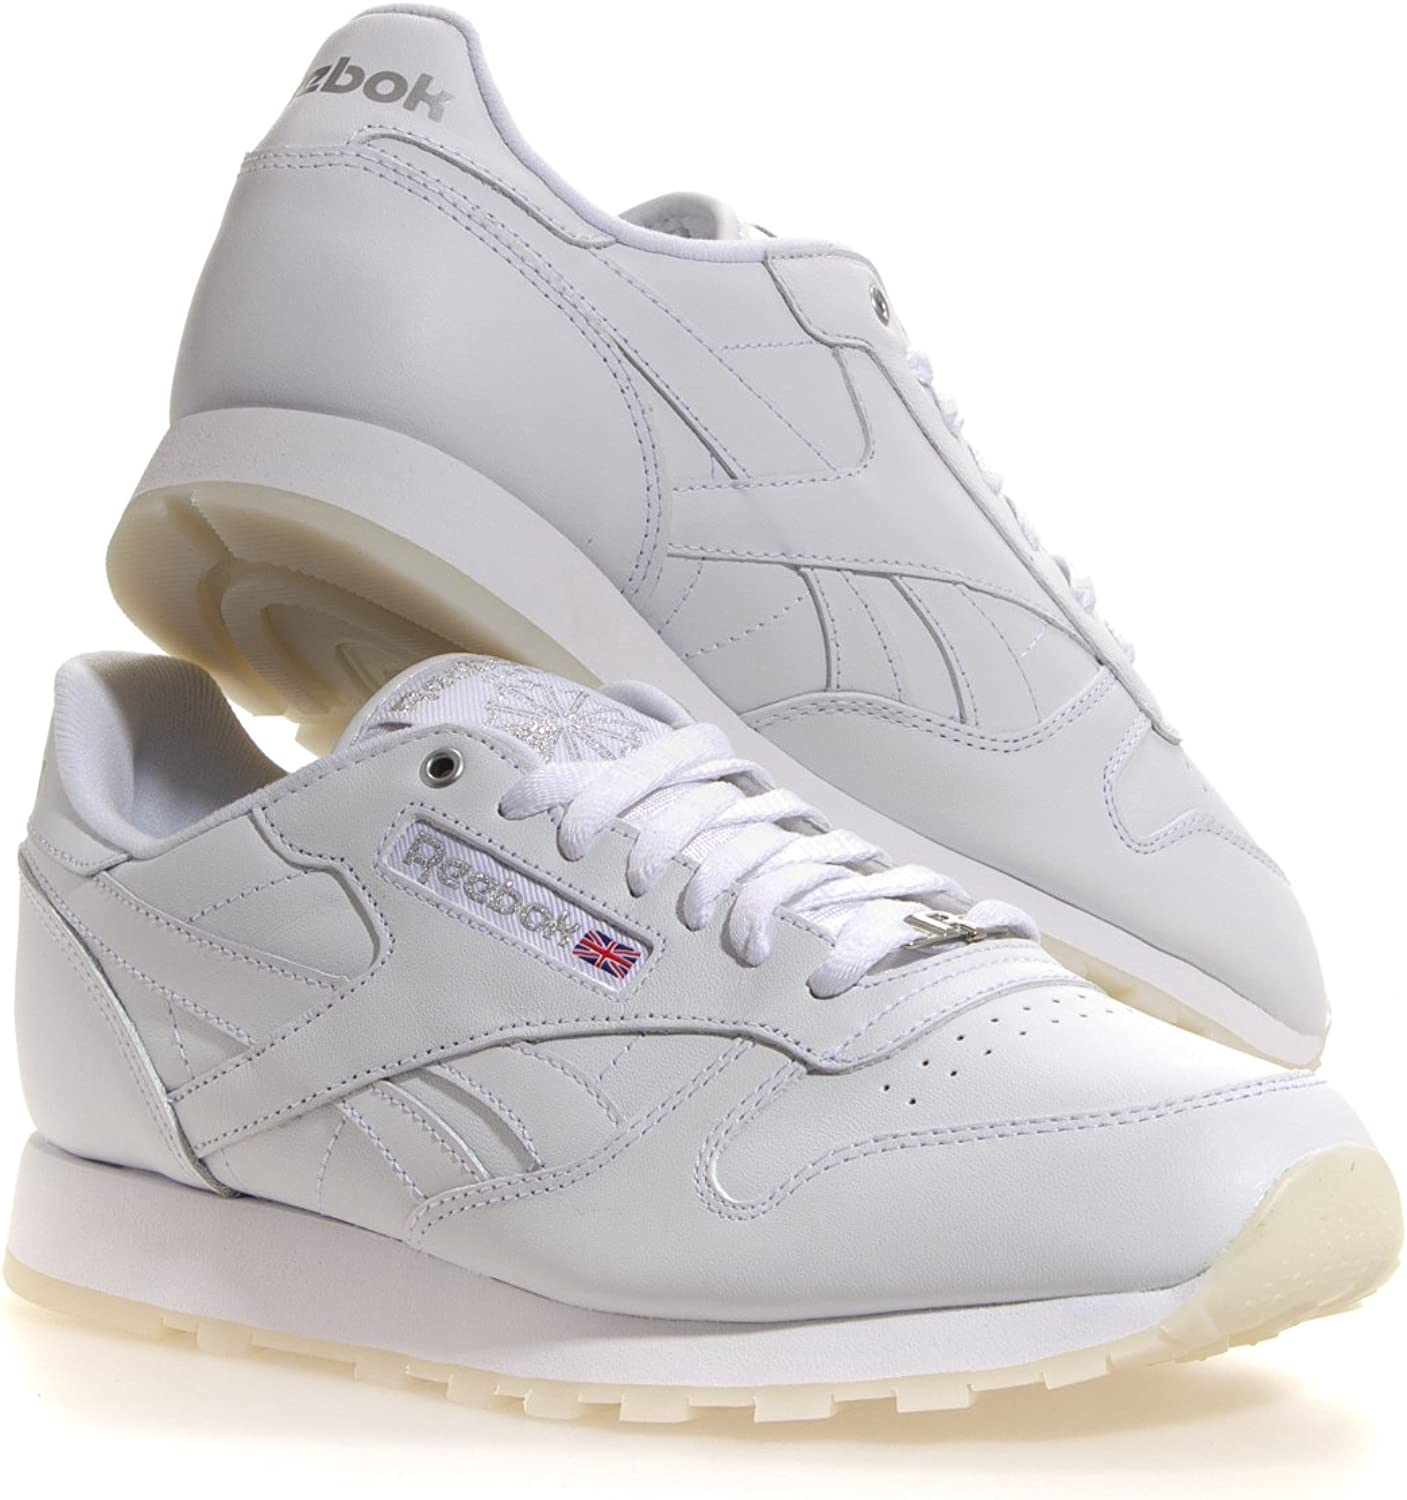 Reebok Classic Leather ICE V52174 White Silver ICE Men shoes